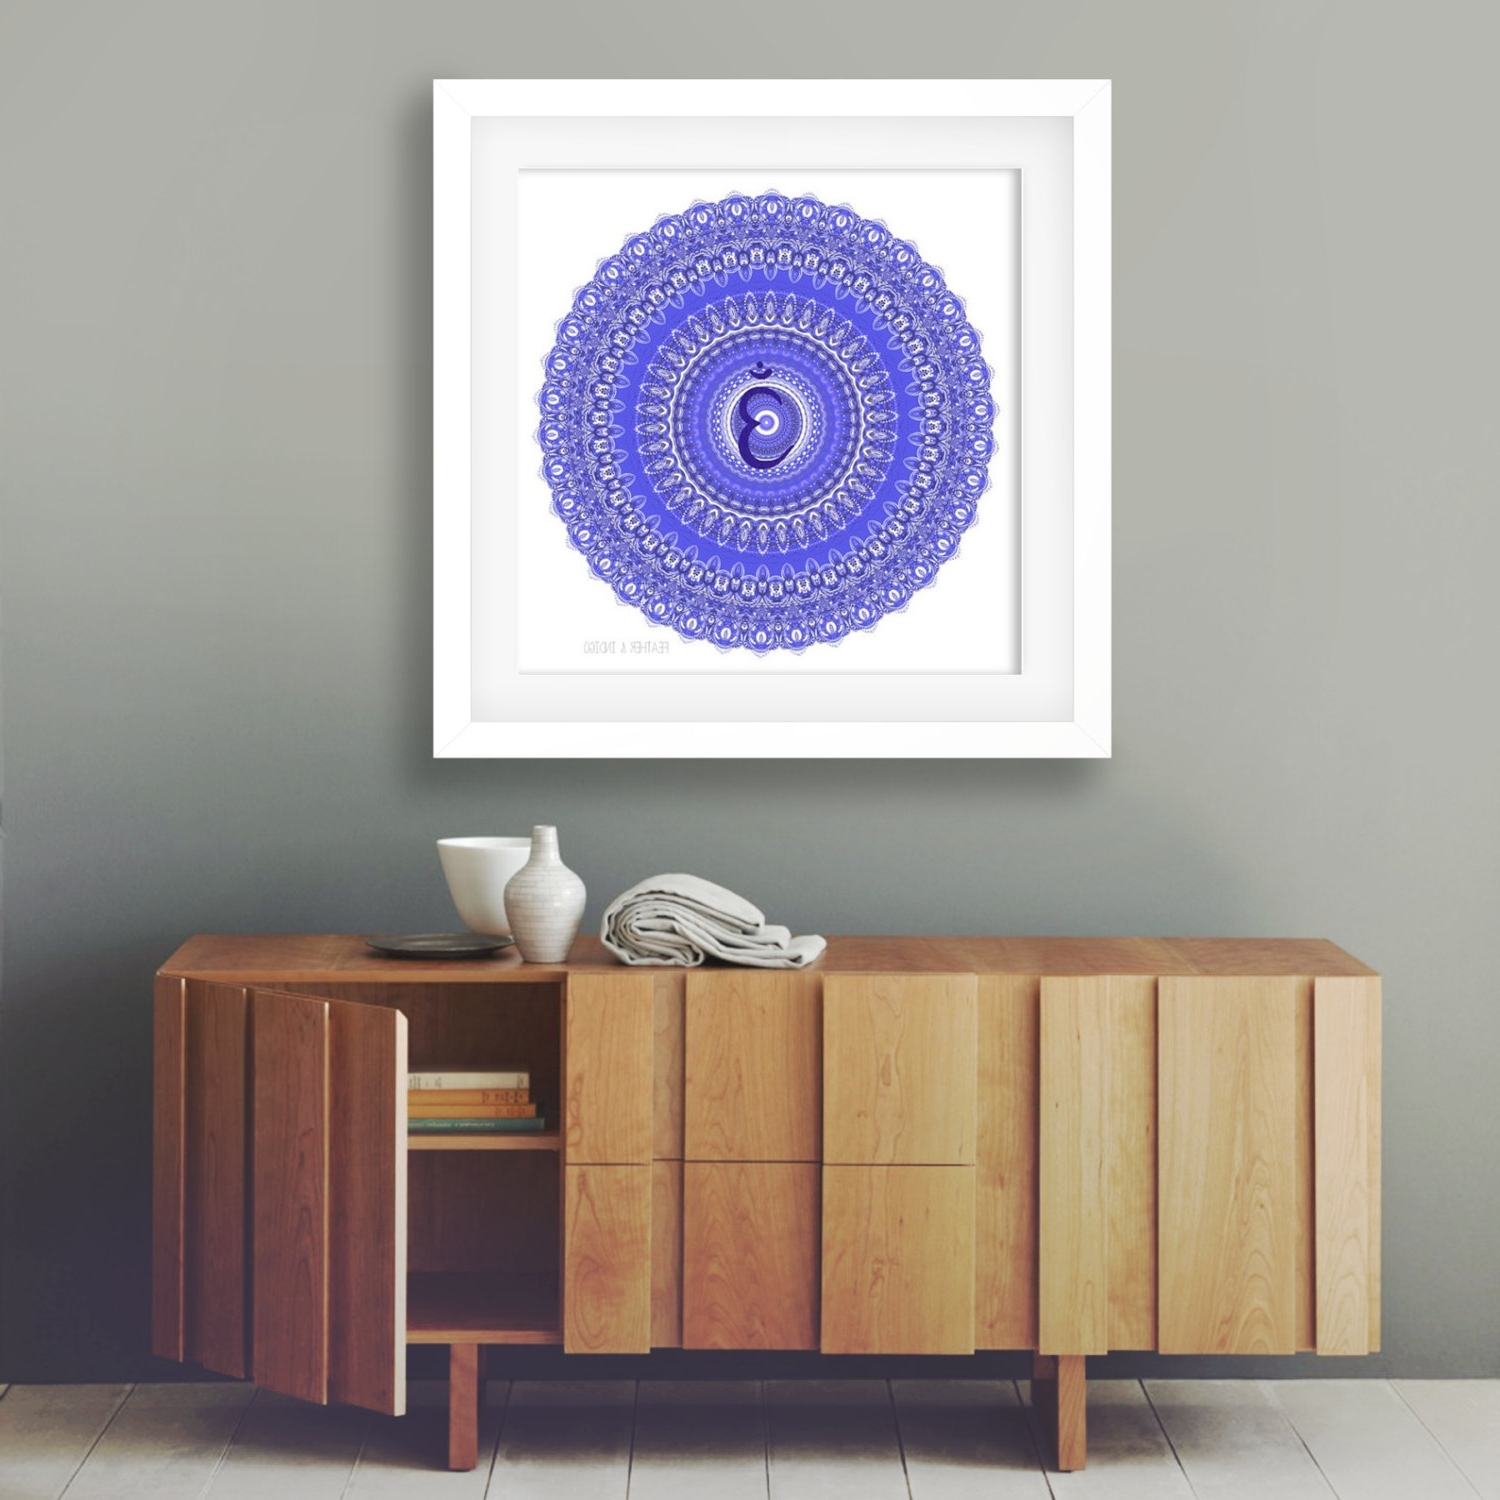 Latest Popular Items For Mandala Wall Decor On Etsy Third Eye Chakra Art With Regard To Etsy Wall Accents (View 7 of 15)